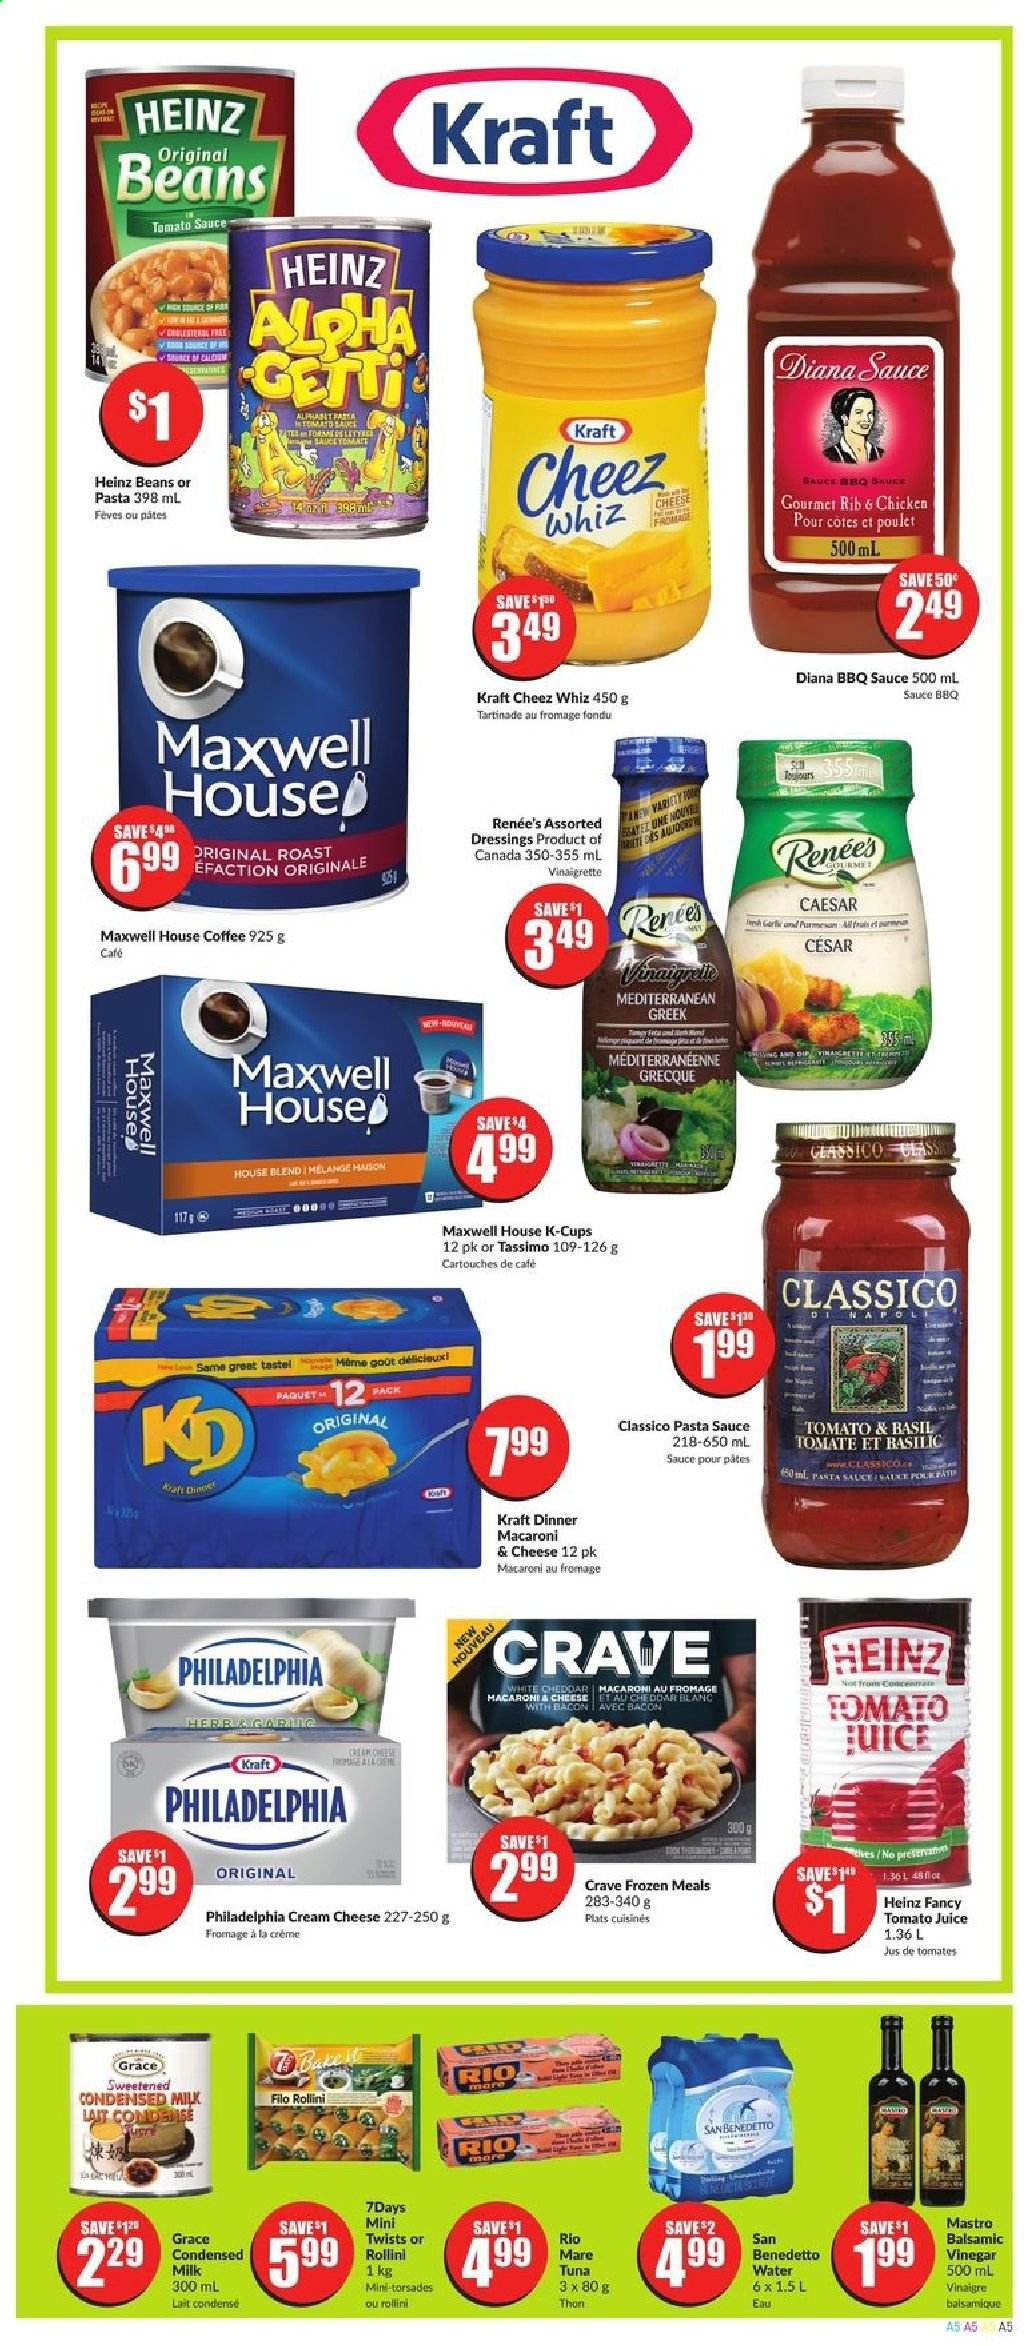 FreshCo. Flyer  - September 26, 2019 - October 02, 2019. Page 5.